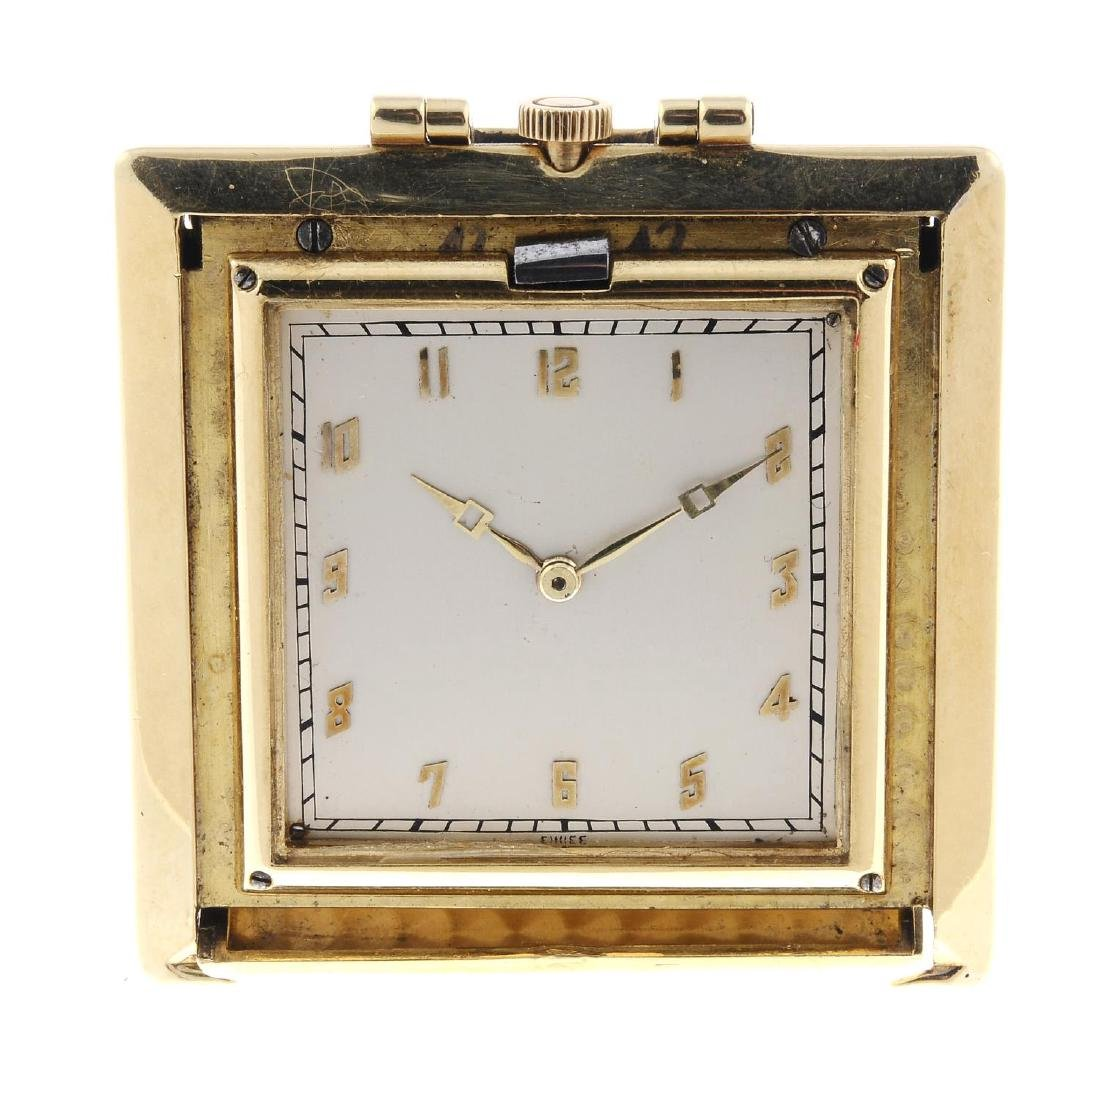 A travel clock by Vacheron Constantin. Yellow metal